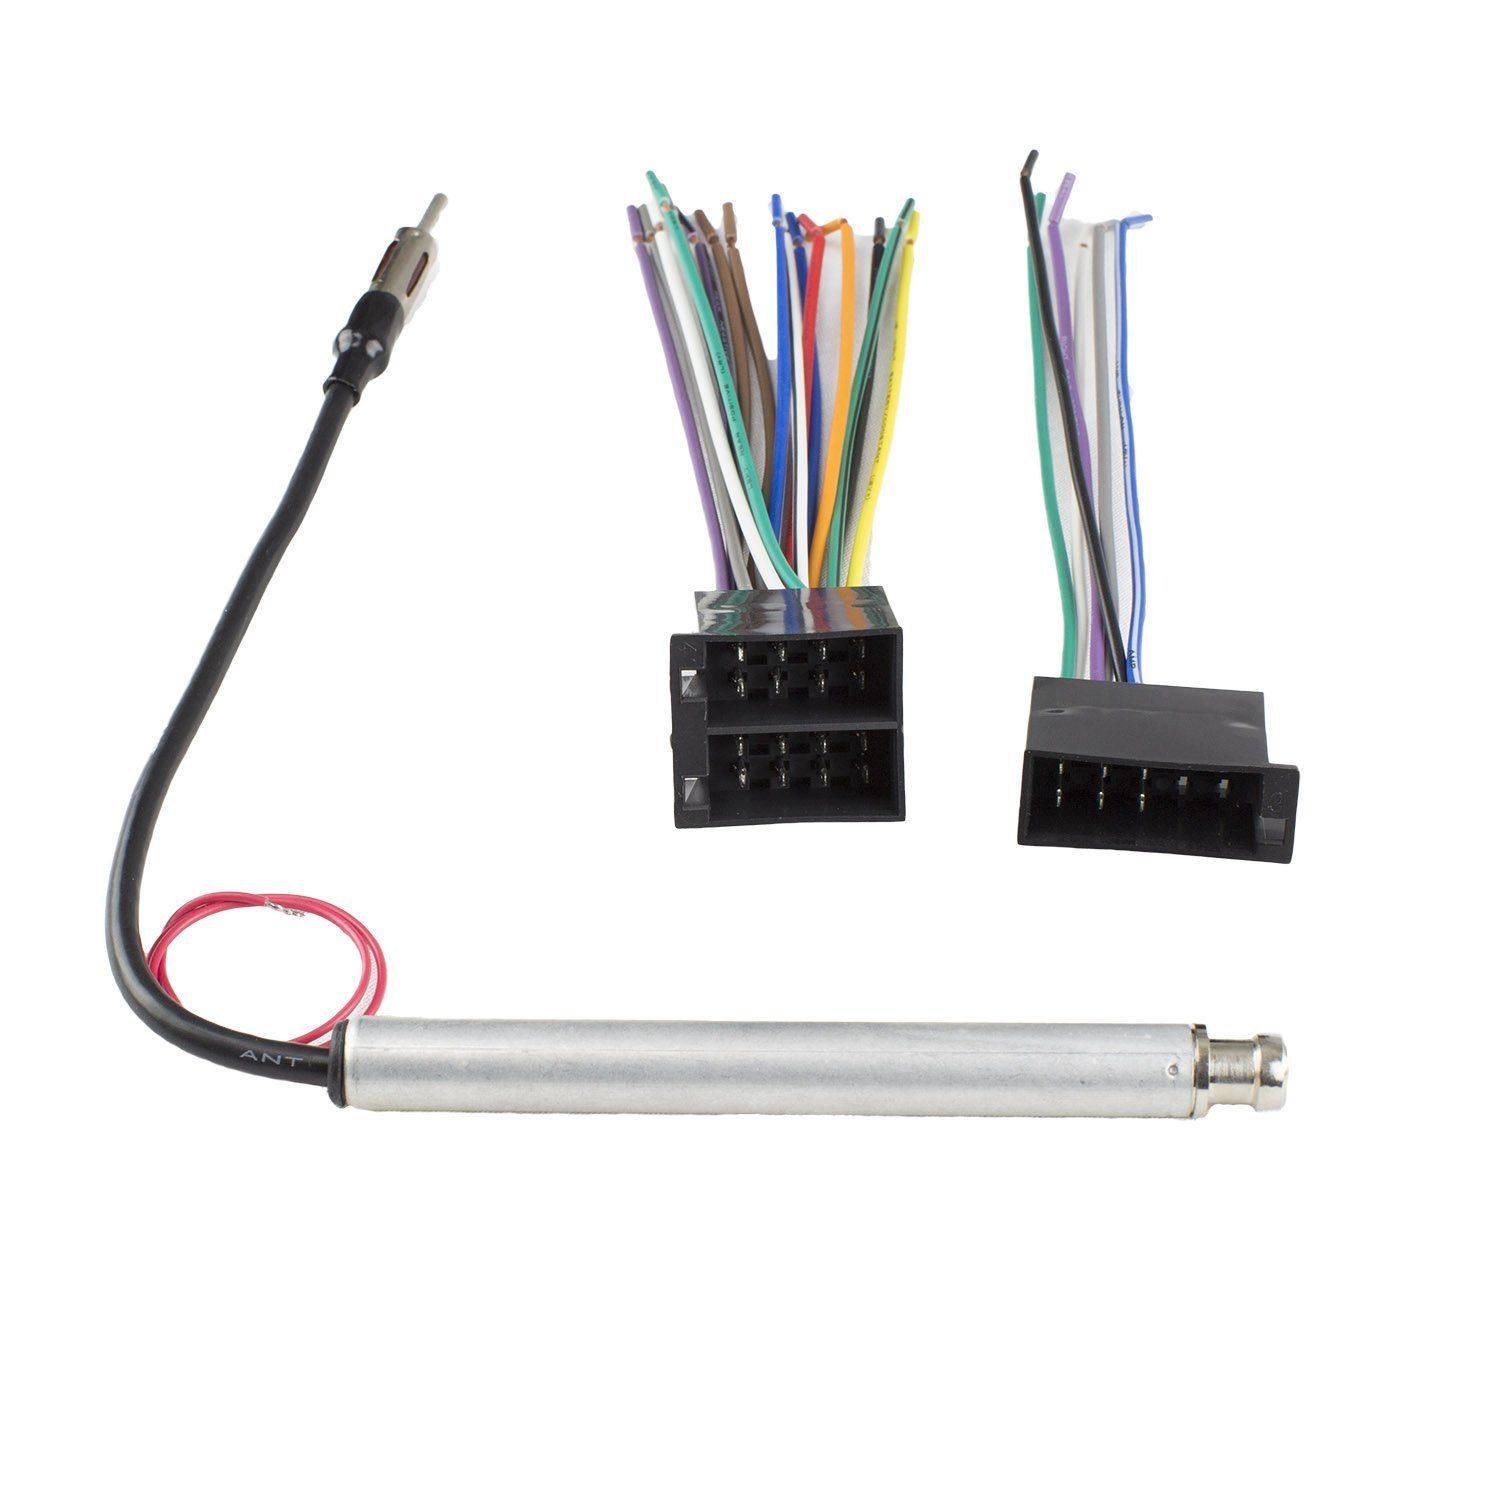 Novosonics VWF-1004+VA8 Volkswagen Wiring Harness and Antenna Adapter For  Vehicles with Non-Amplified or Monsoon systems. Connect an aftermarket  stereo to ...